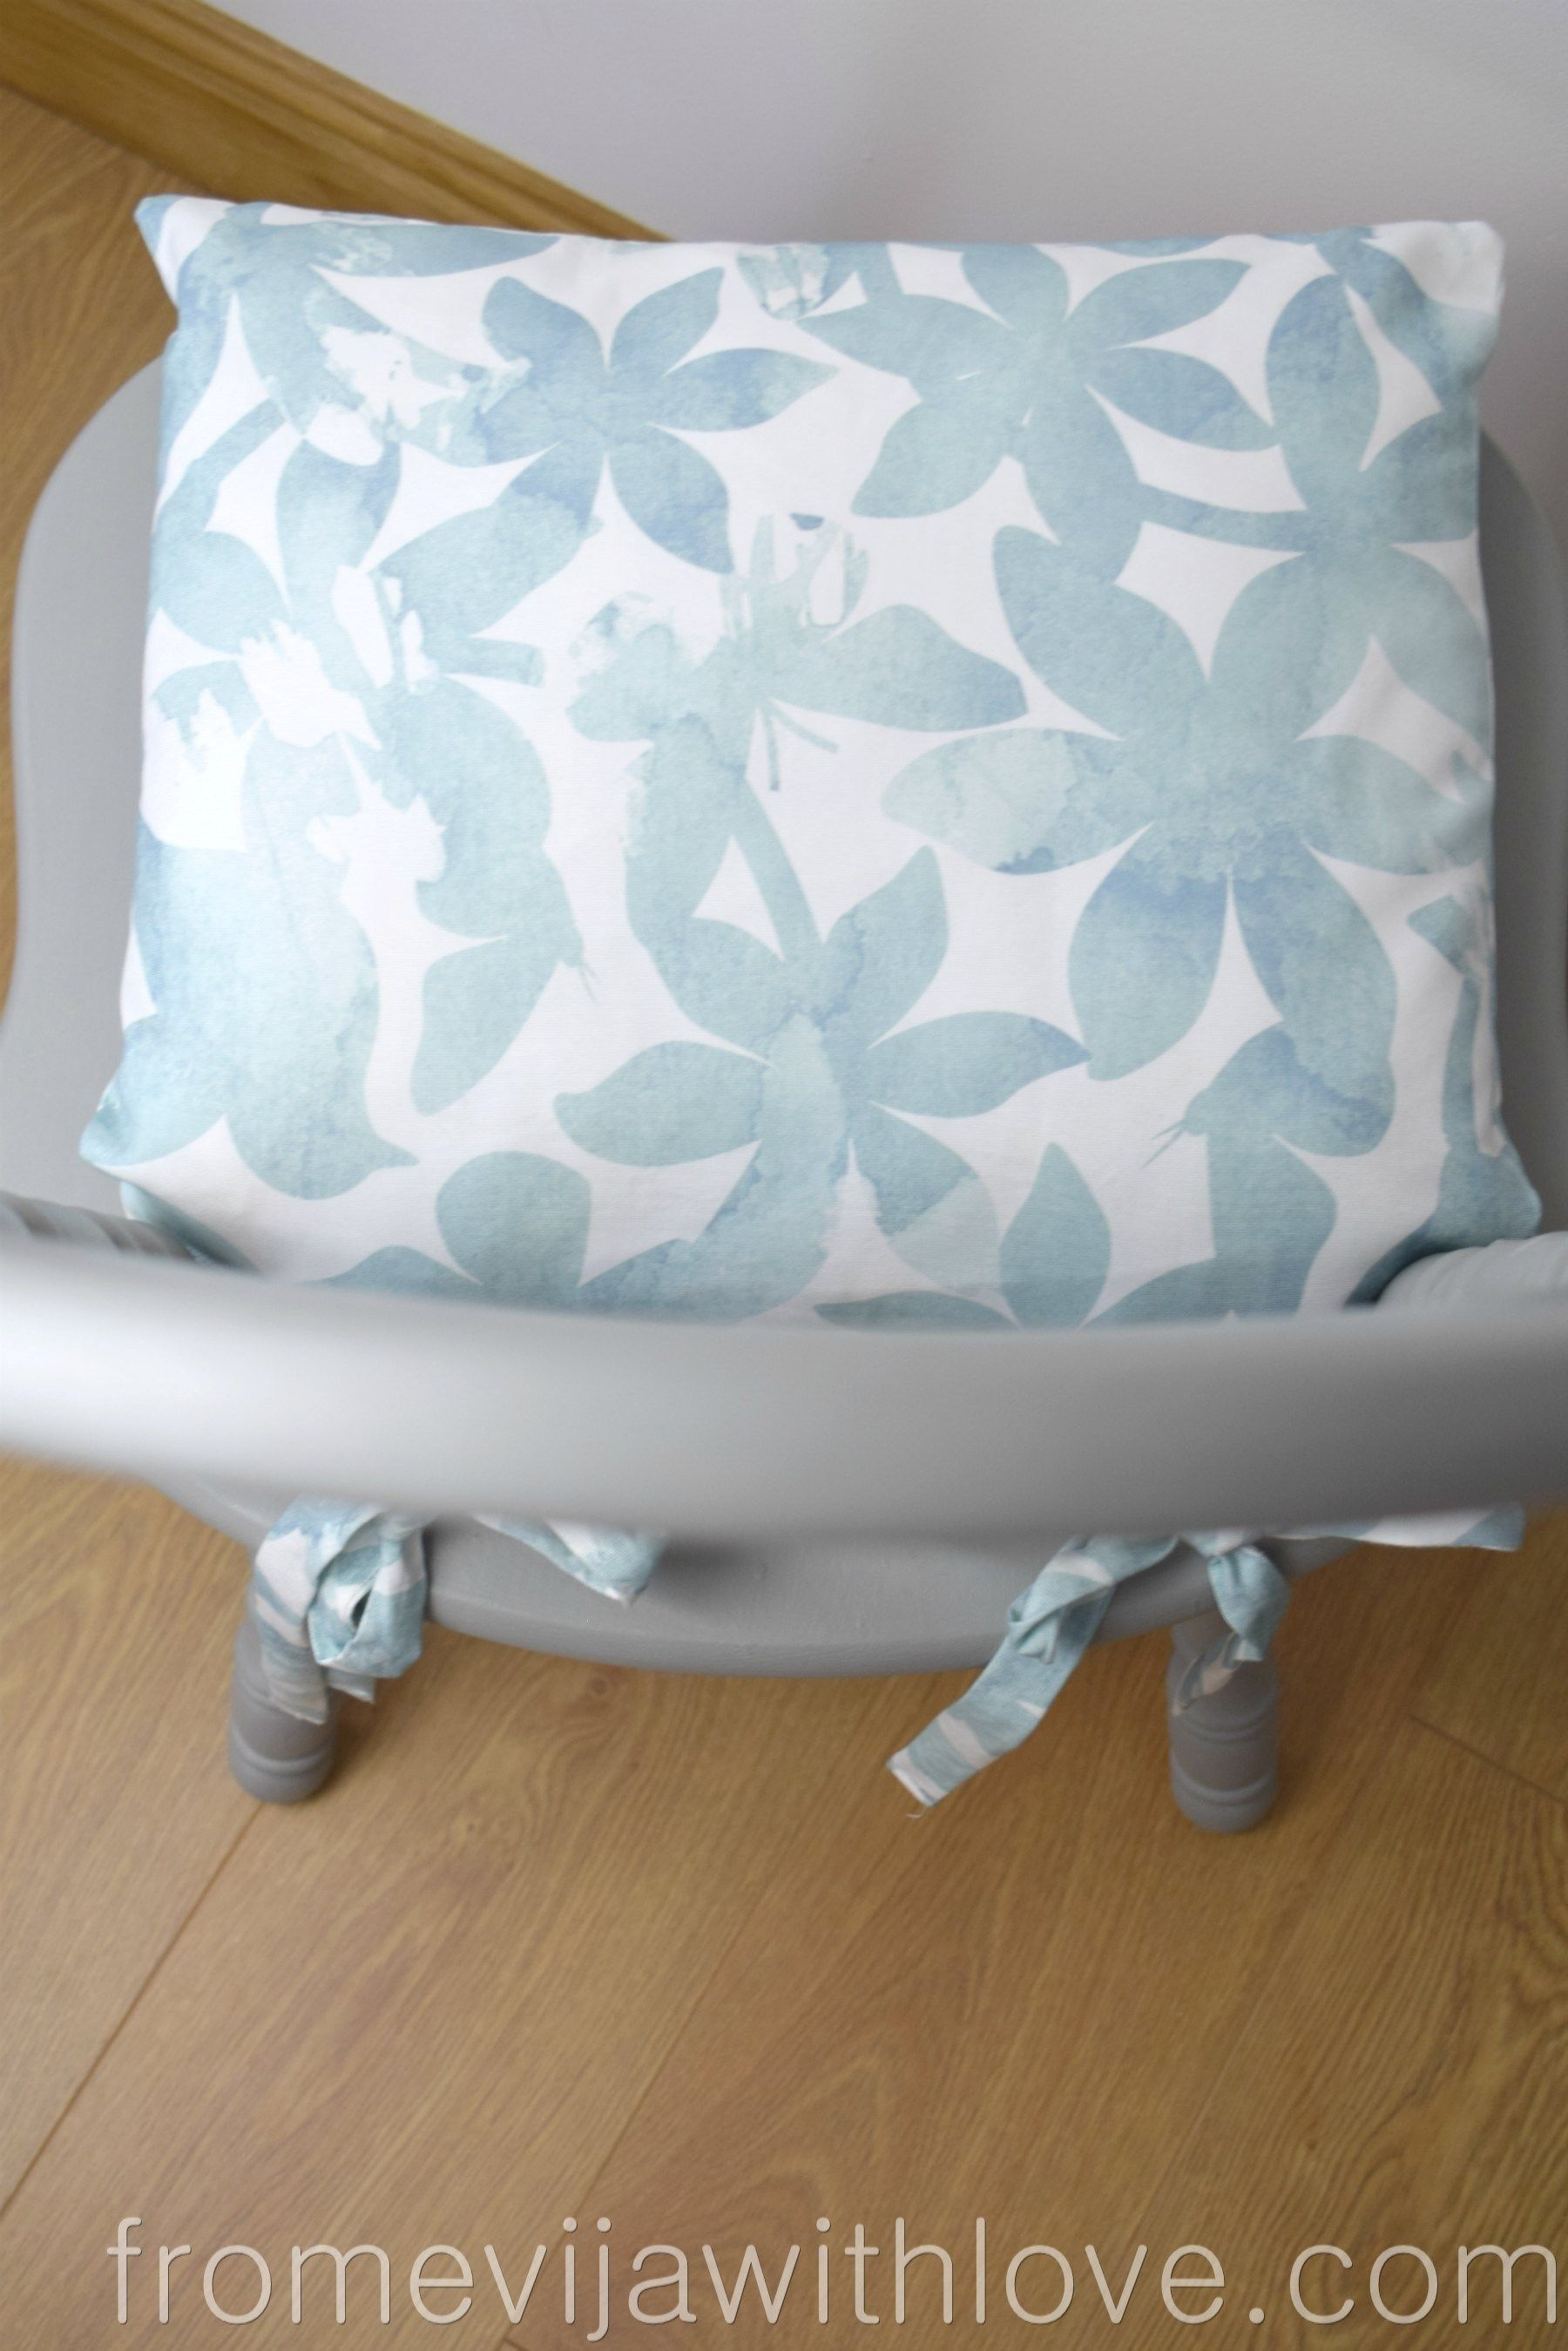 How to Make a Chair Cushion with Ties Chair cushions